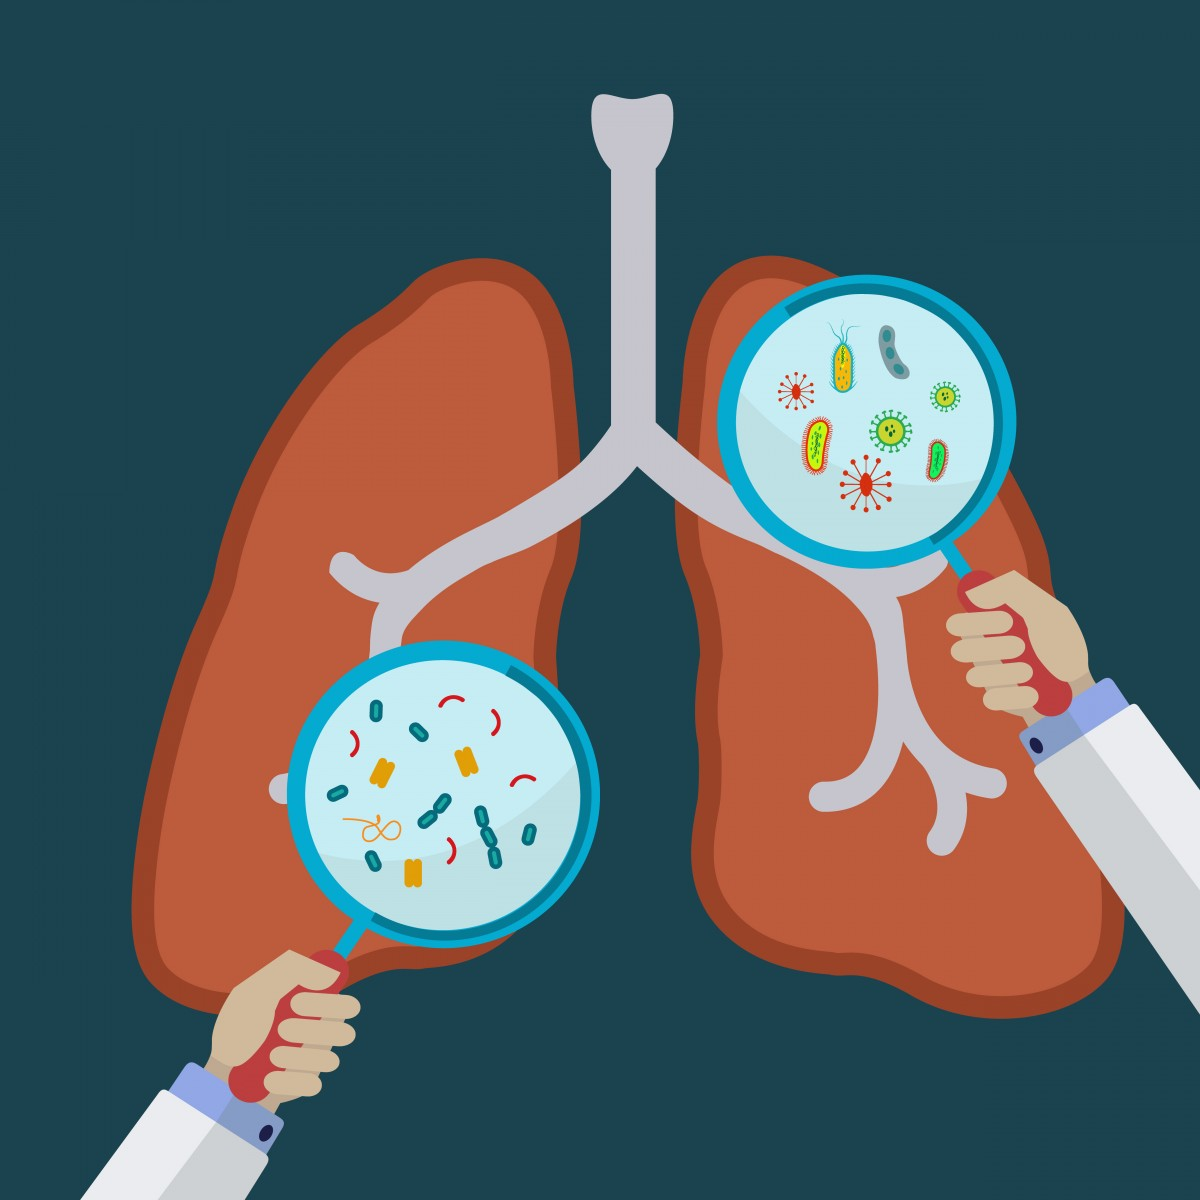 Viral Infections May Affect Cystic Fibrosis Patients: Research Links Reverse Intravascular Hemolysis, Rapid